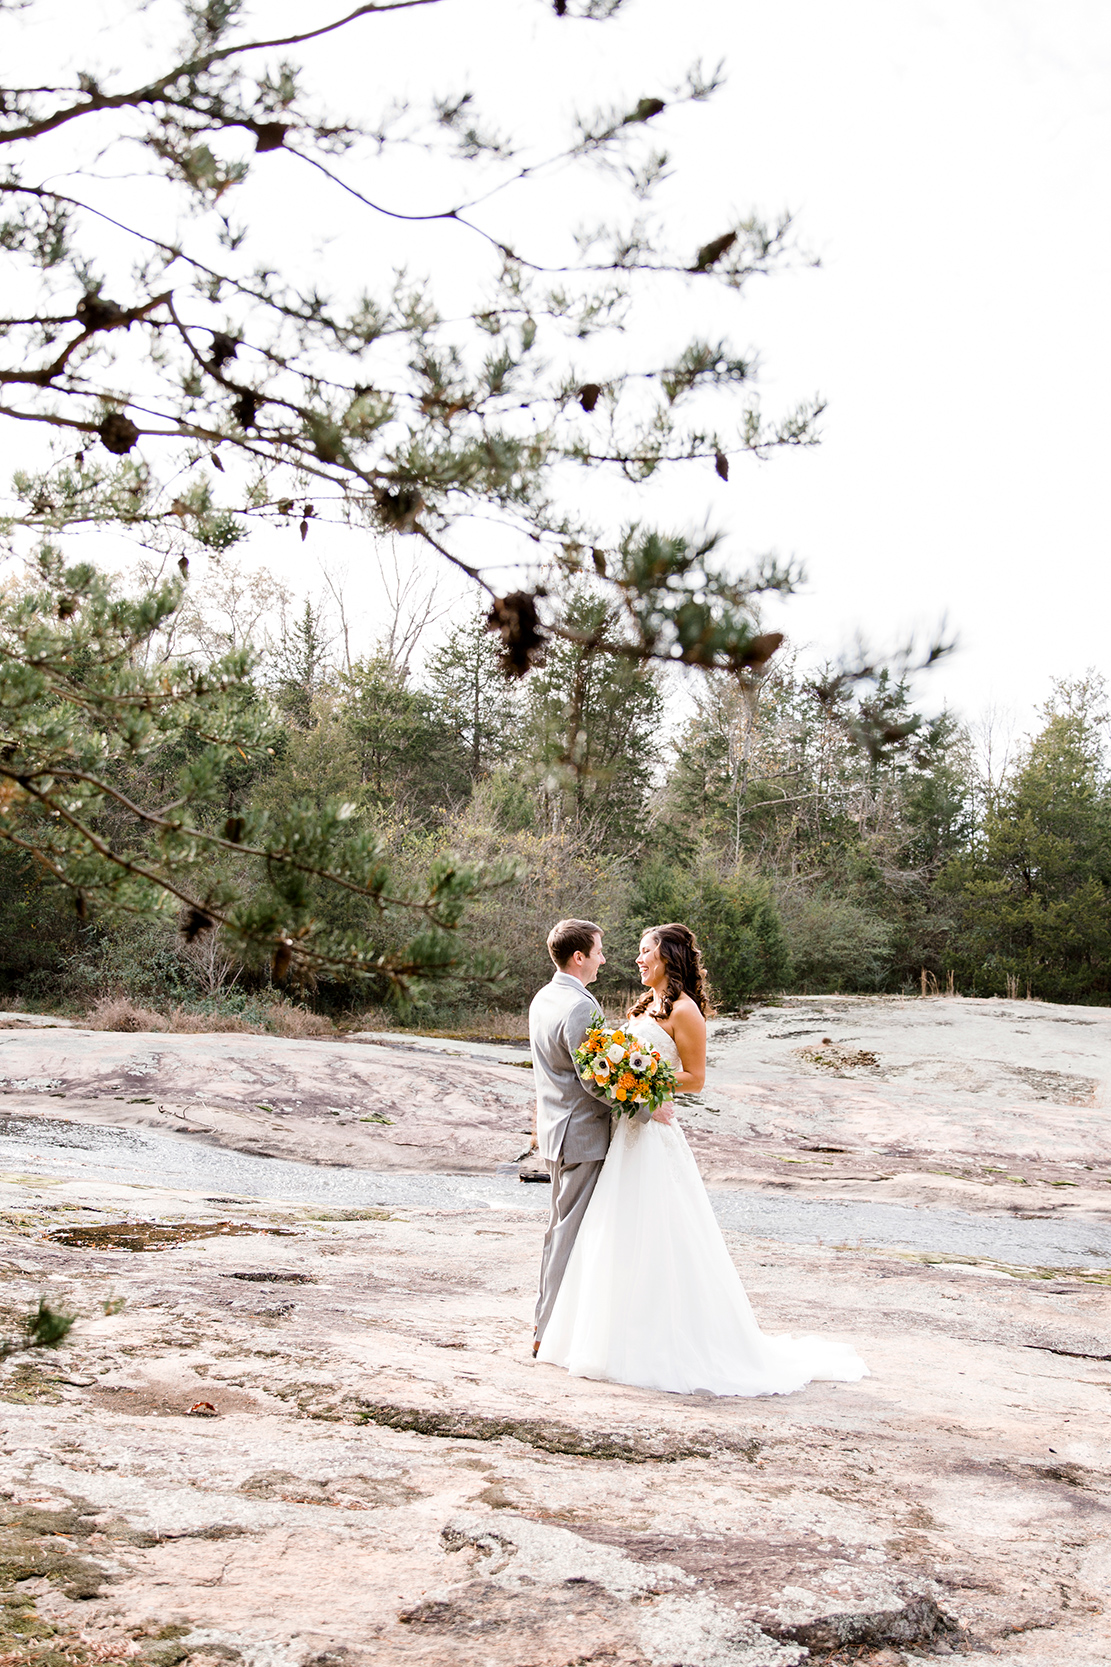 Kate Jessie S Fall Wedding At The Mill At Fine Creek